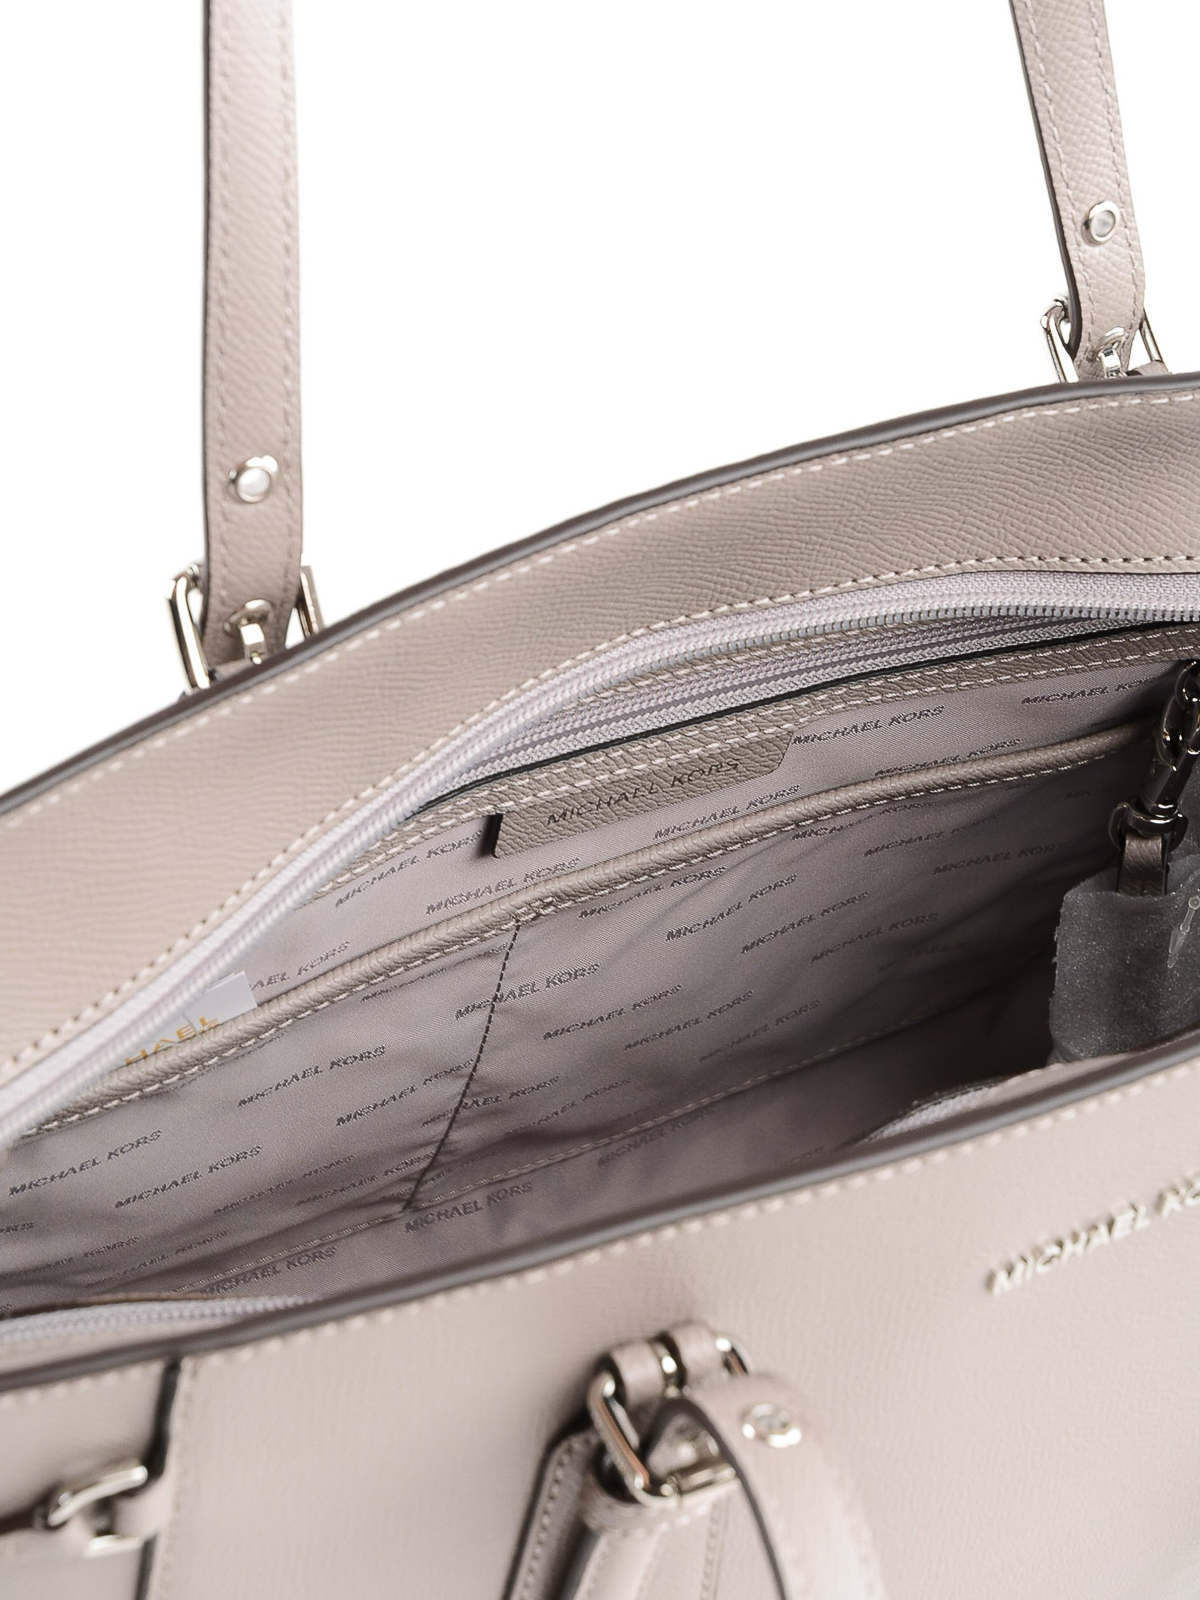 713461f2bfb7fa Michael Kors - Voyager medium pearl grey leather tote - totes bags ...